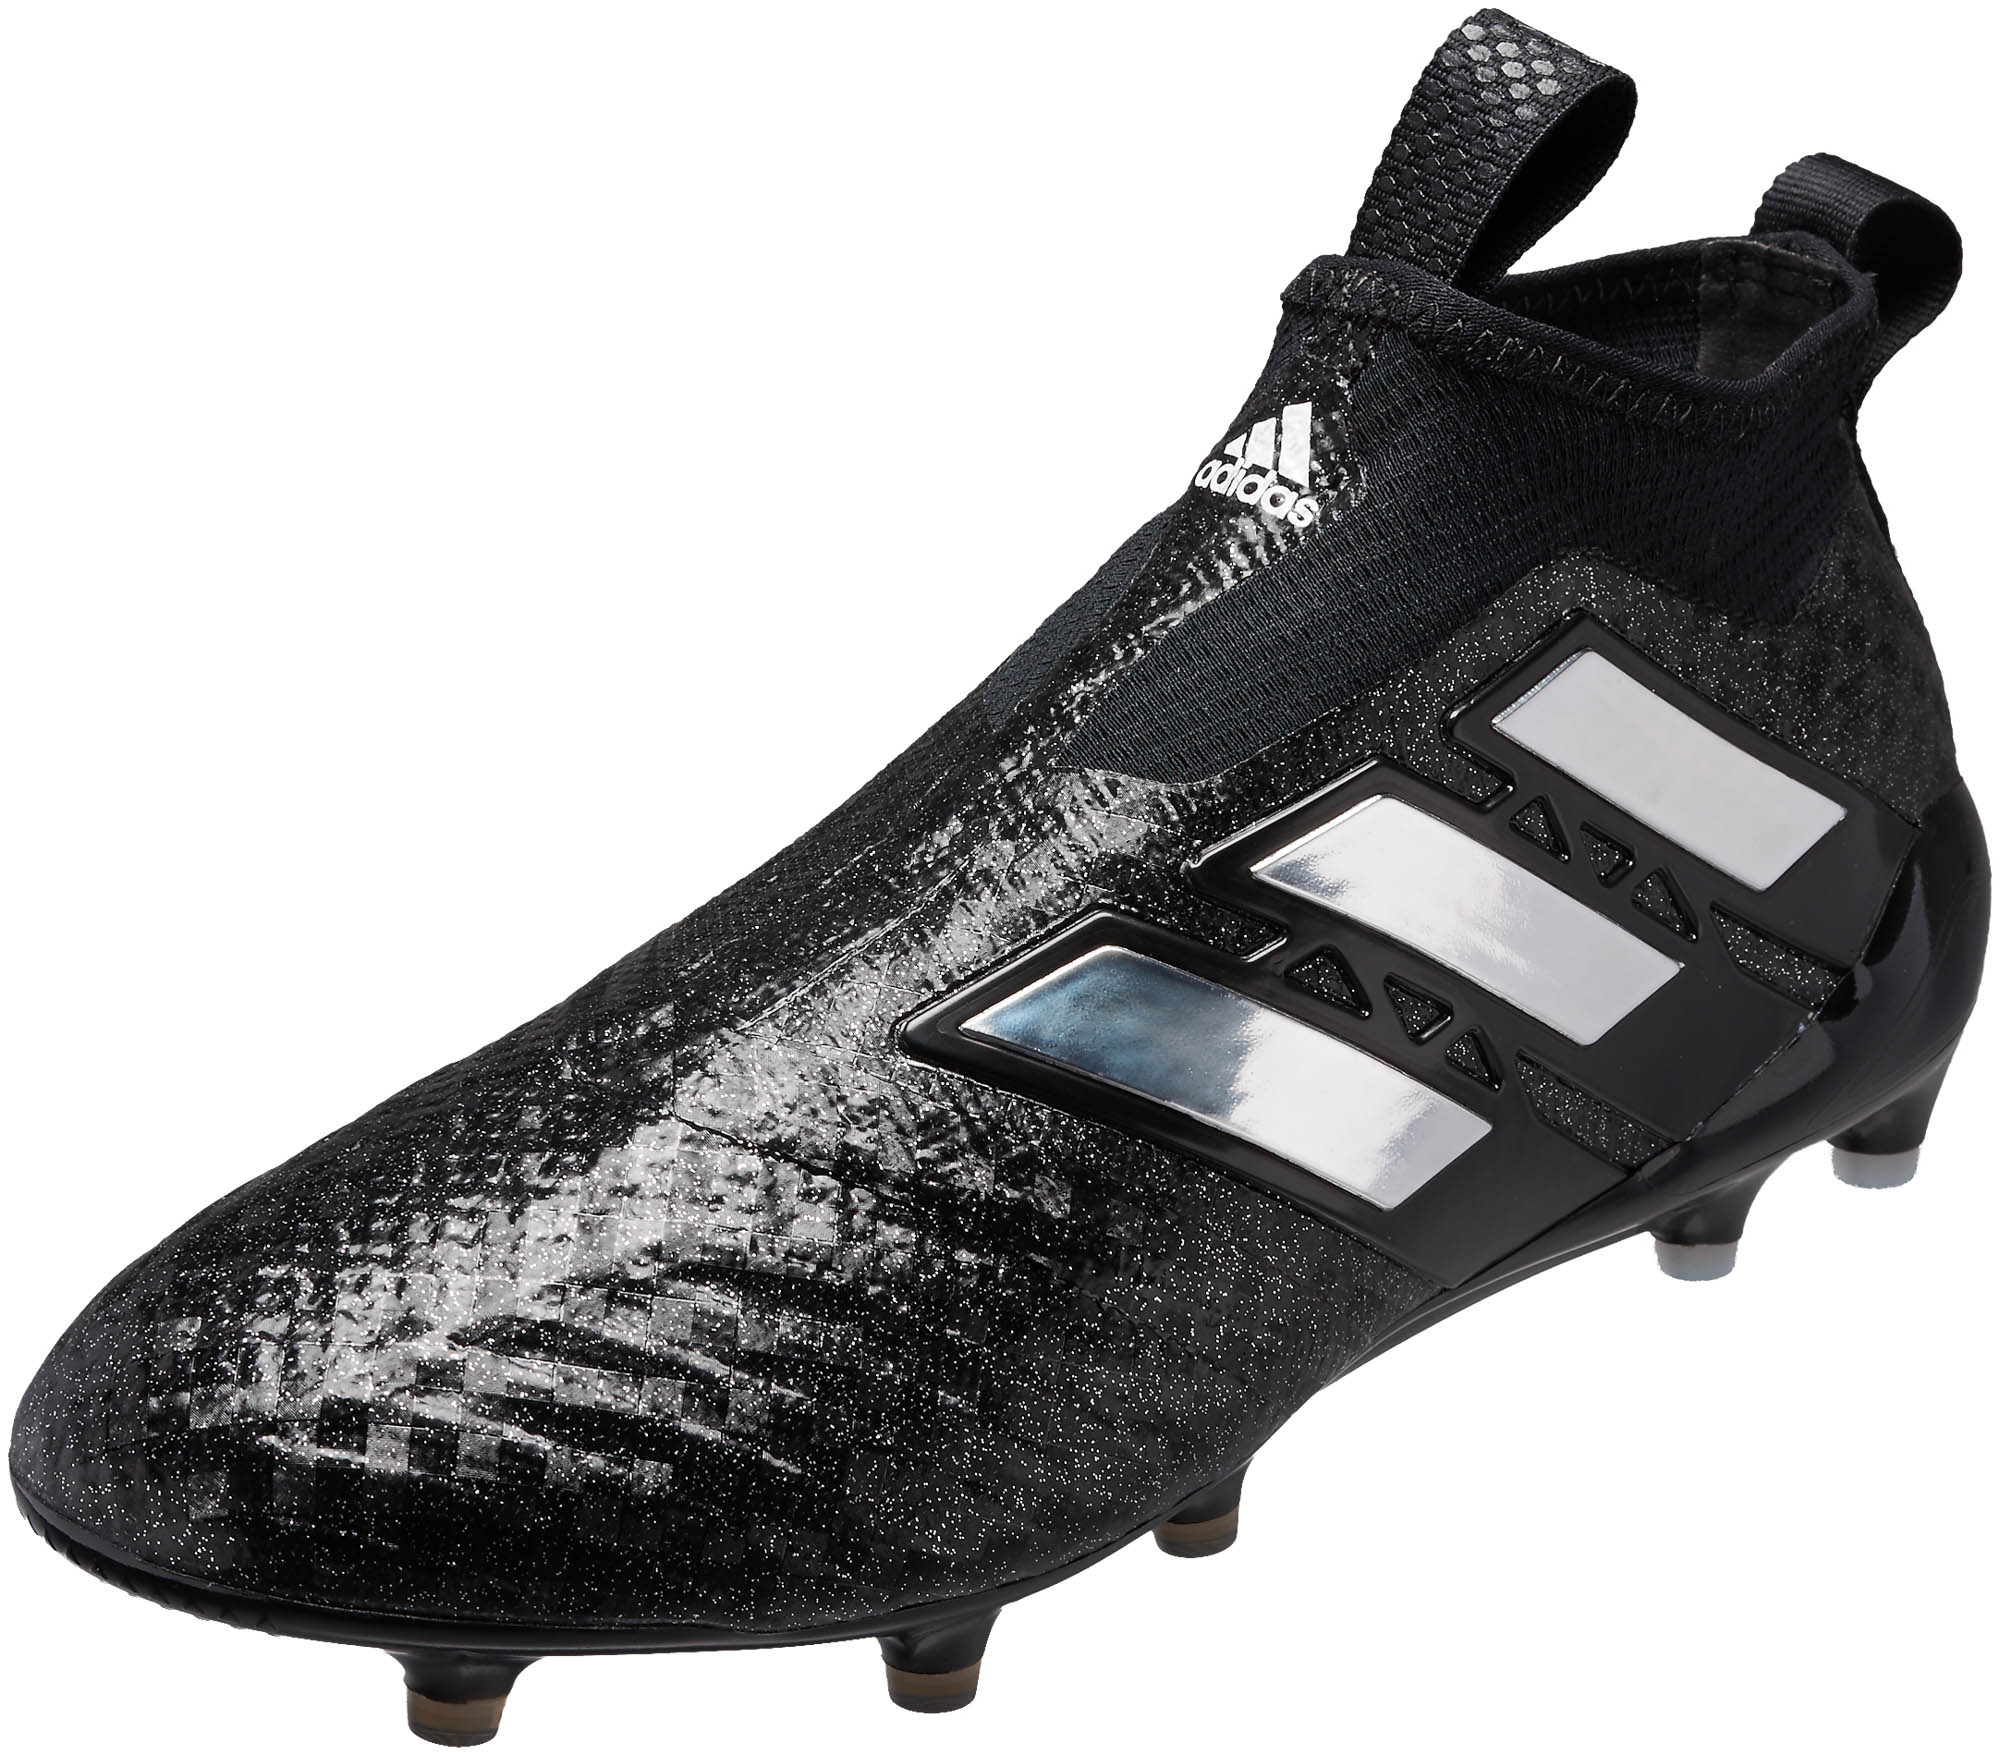 994d99d6a49f adidas ACE 17 Purecontrol - Black ACE FG Soccer Cleats